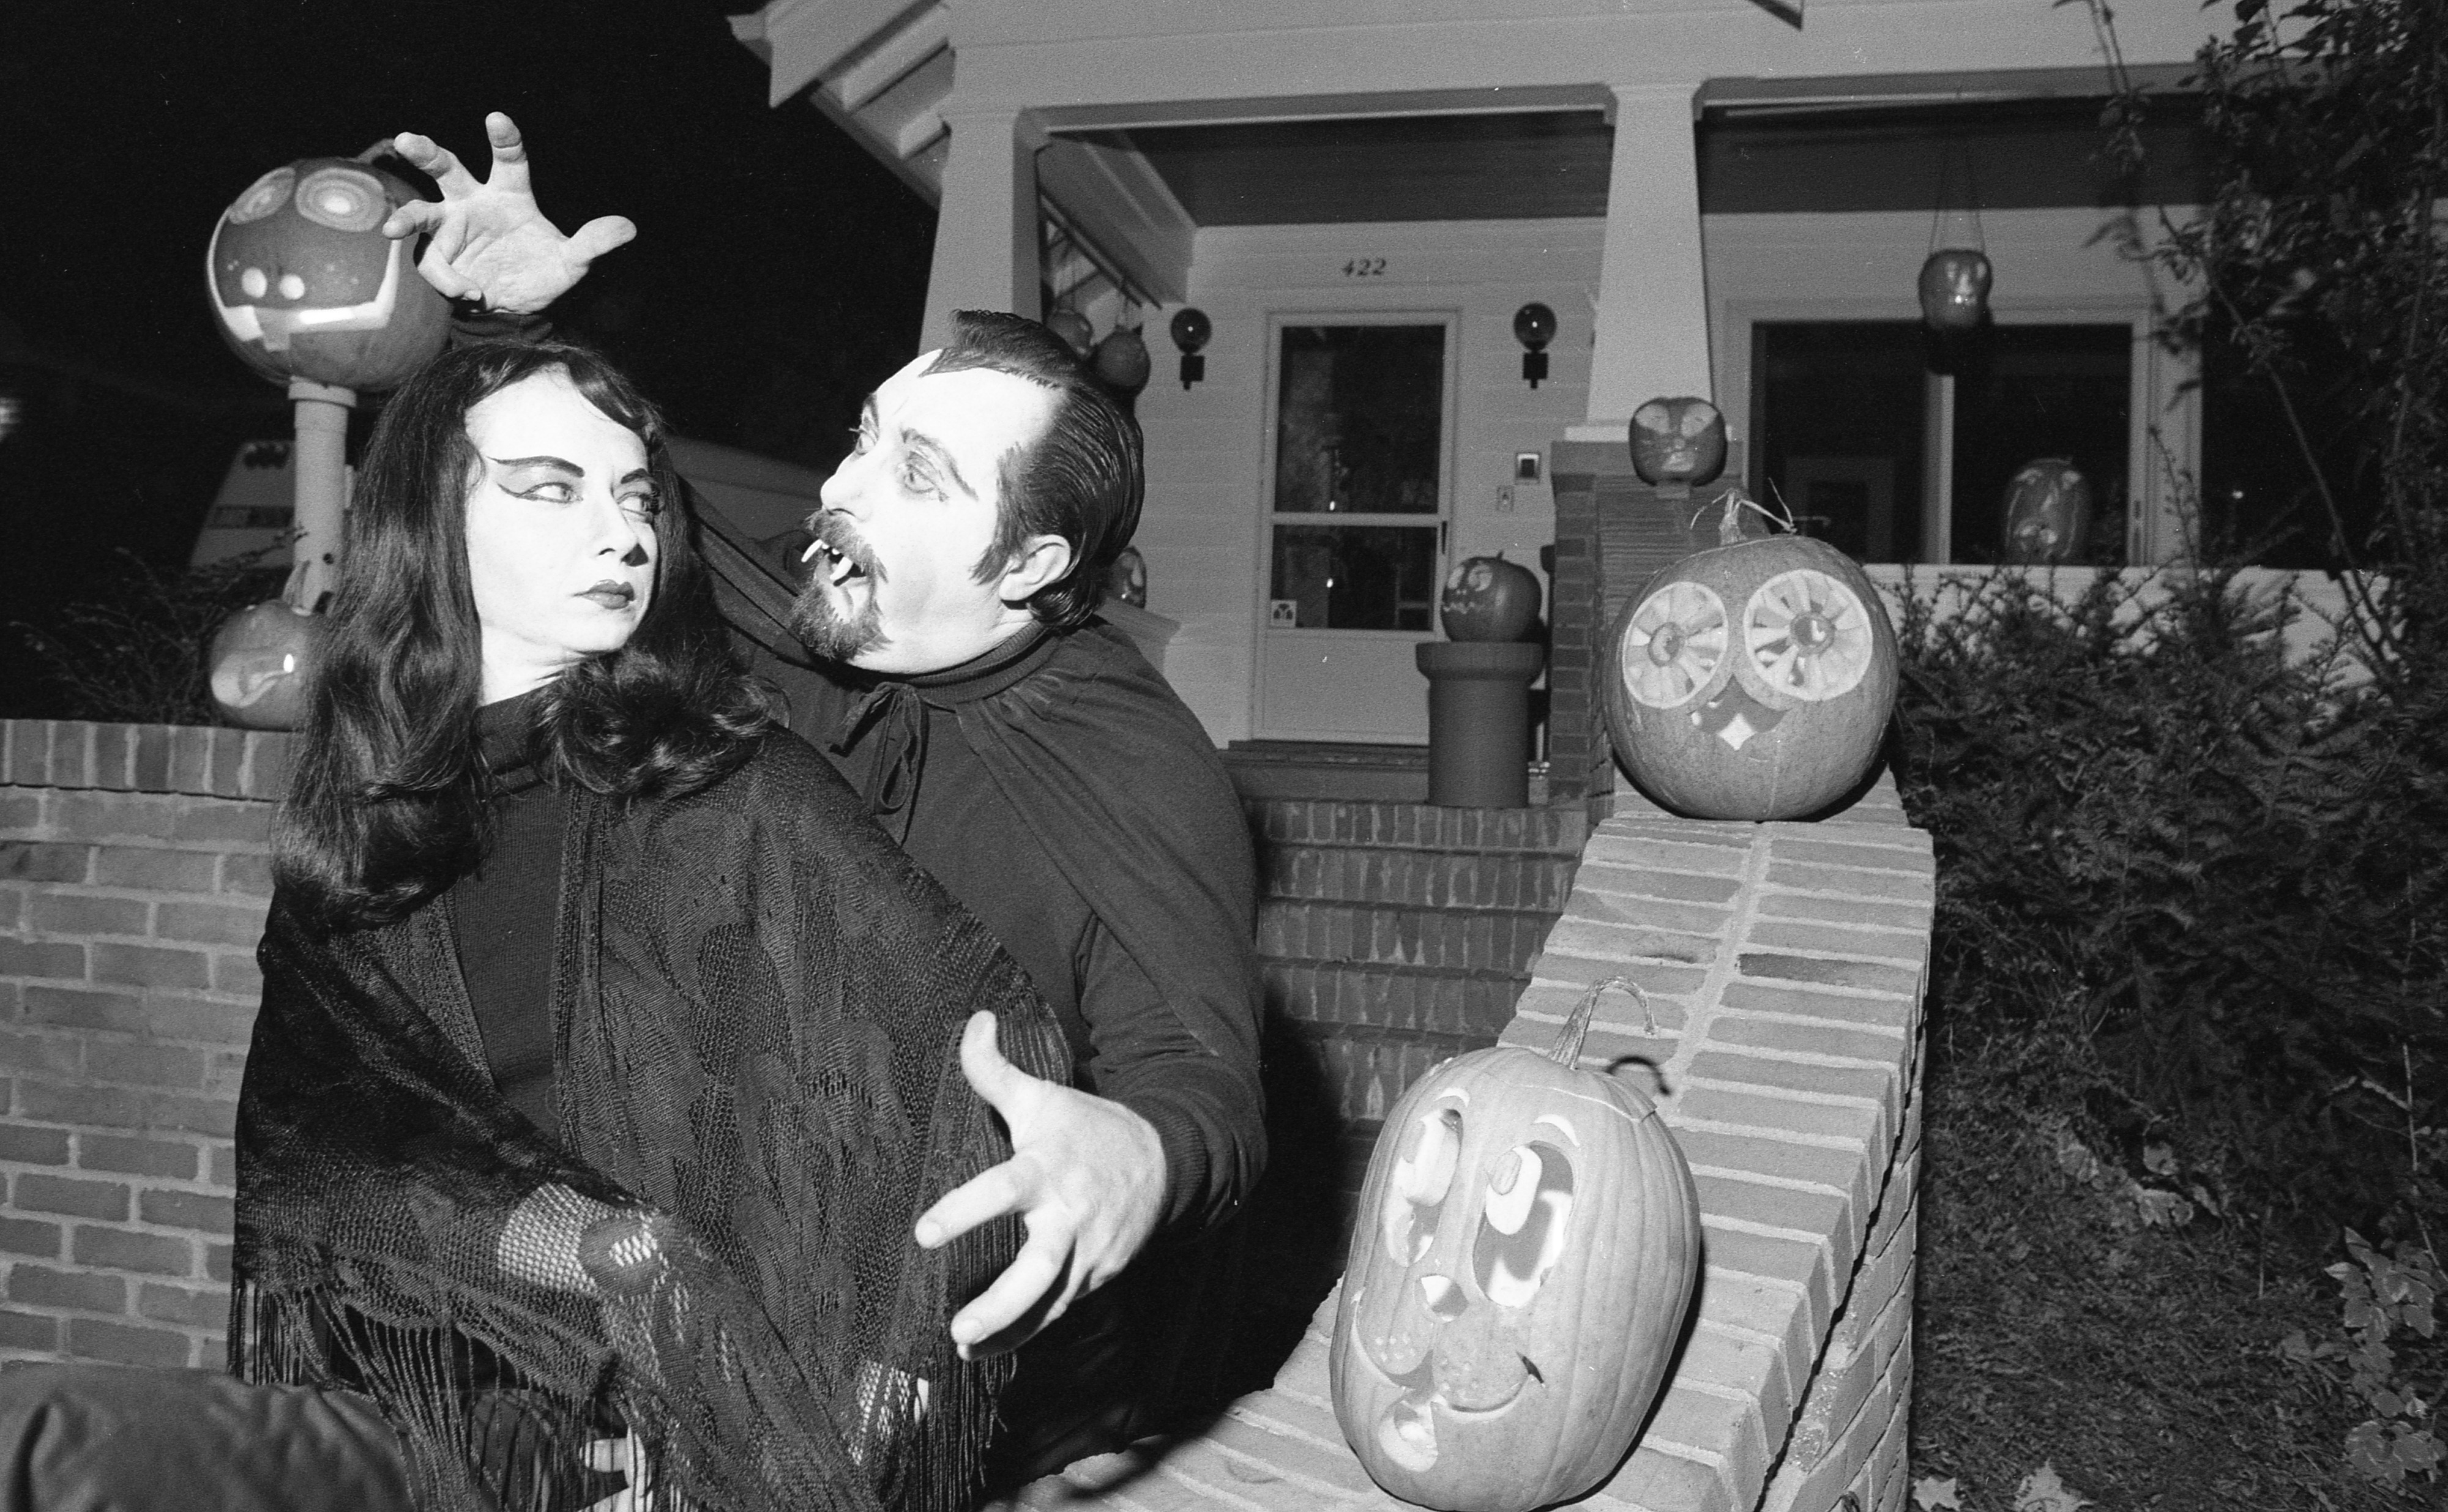 Bob & Carol Taylor In Costume On Halloween, October 1980 image